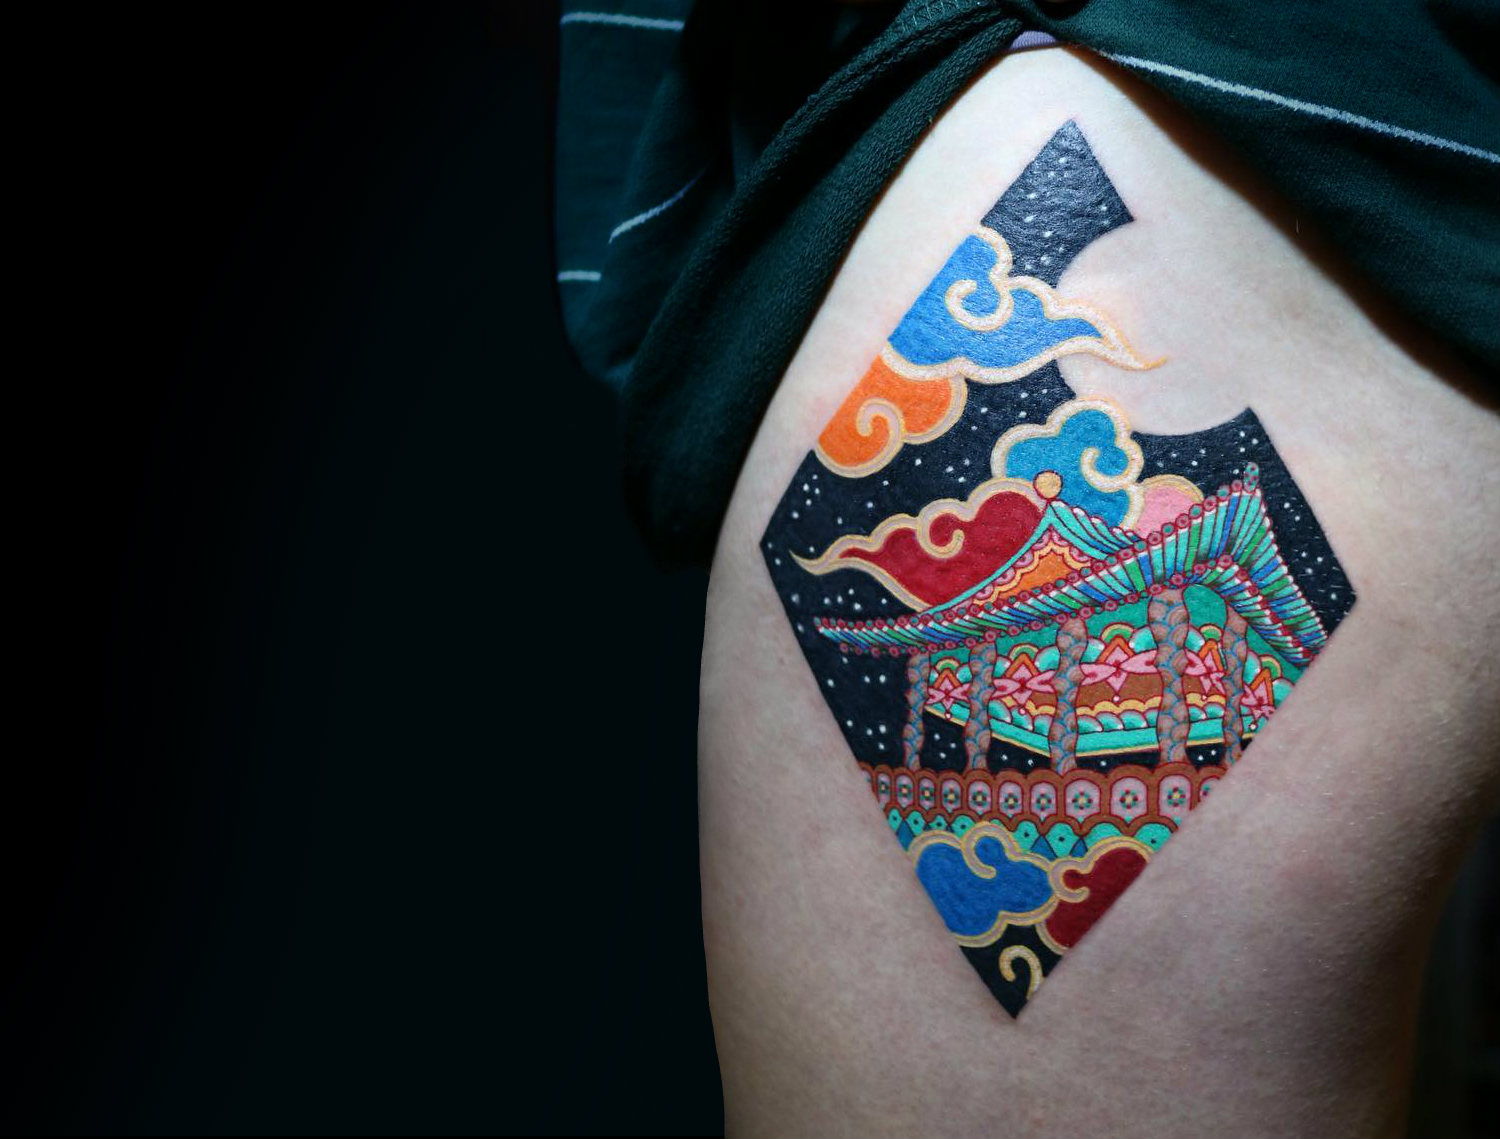 Neon Japanese temple tattoo by Pitta KKM